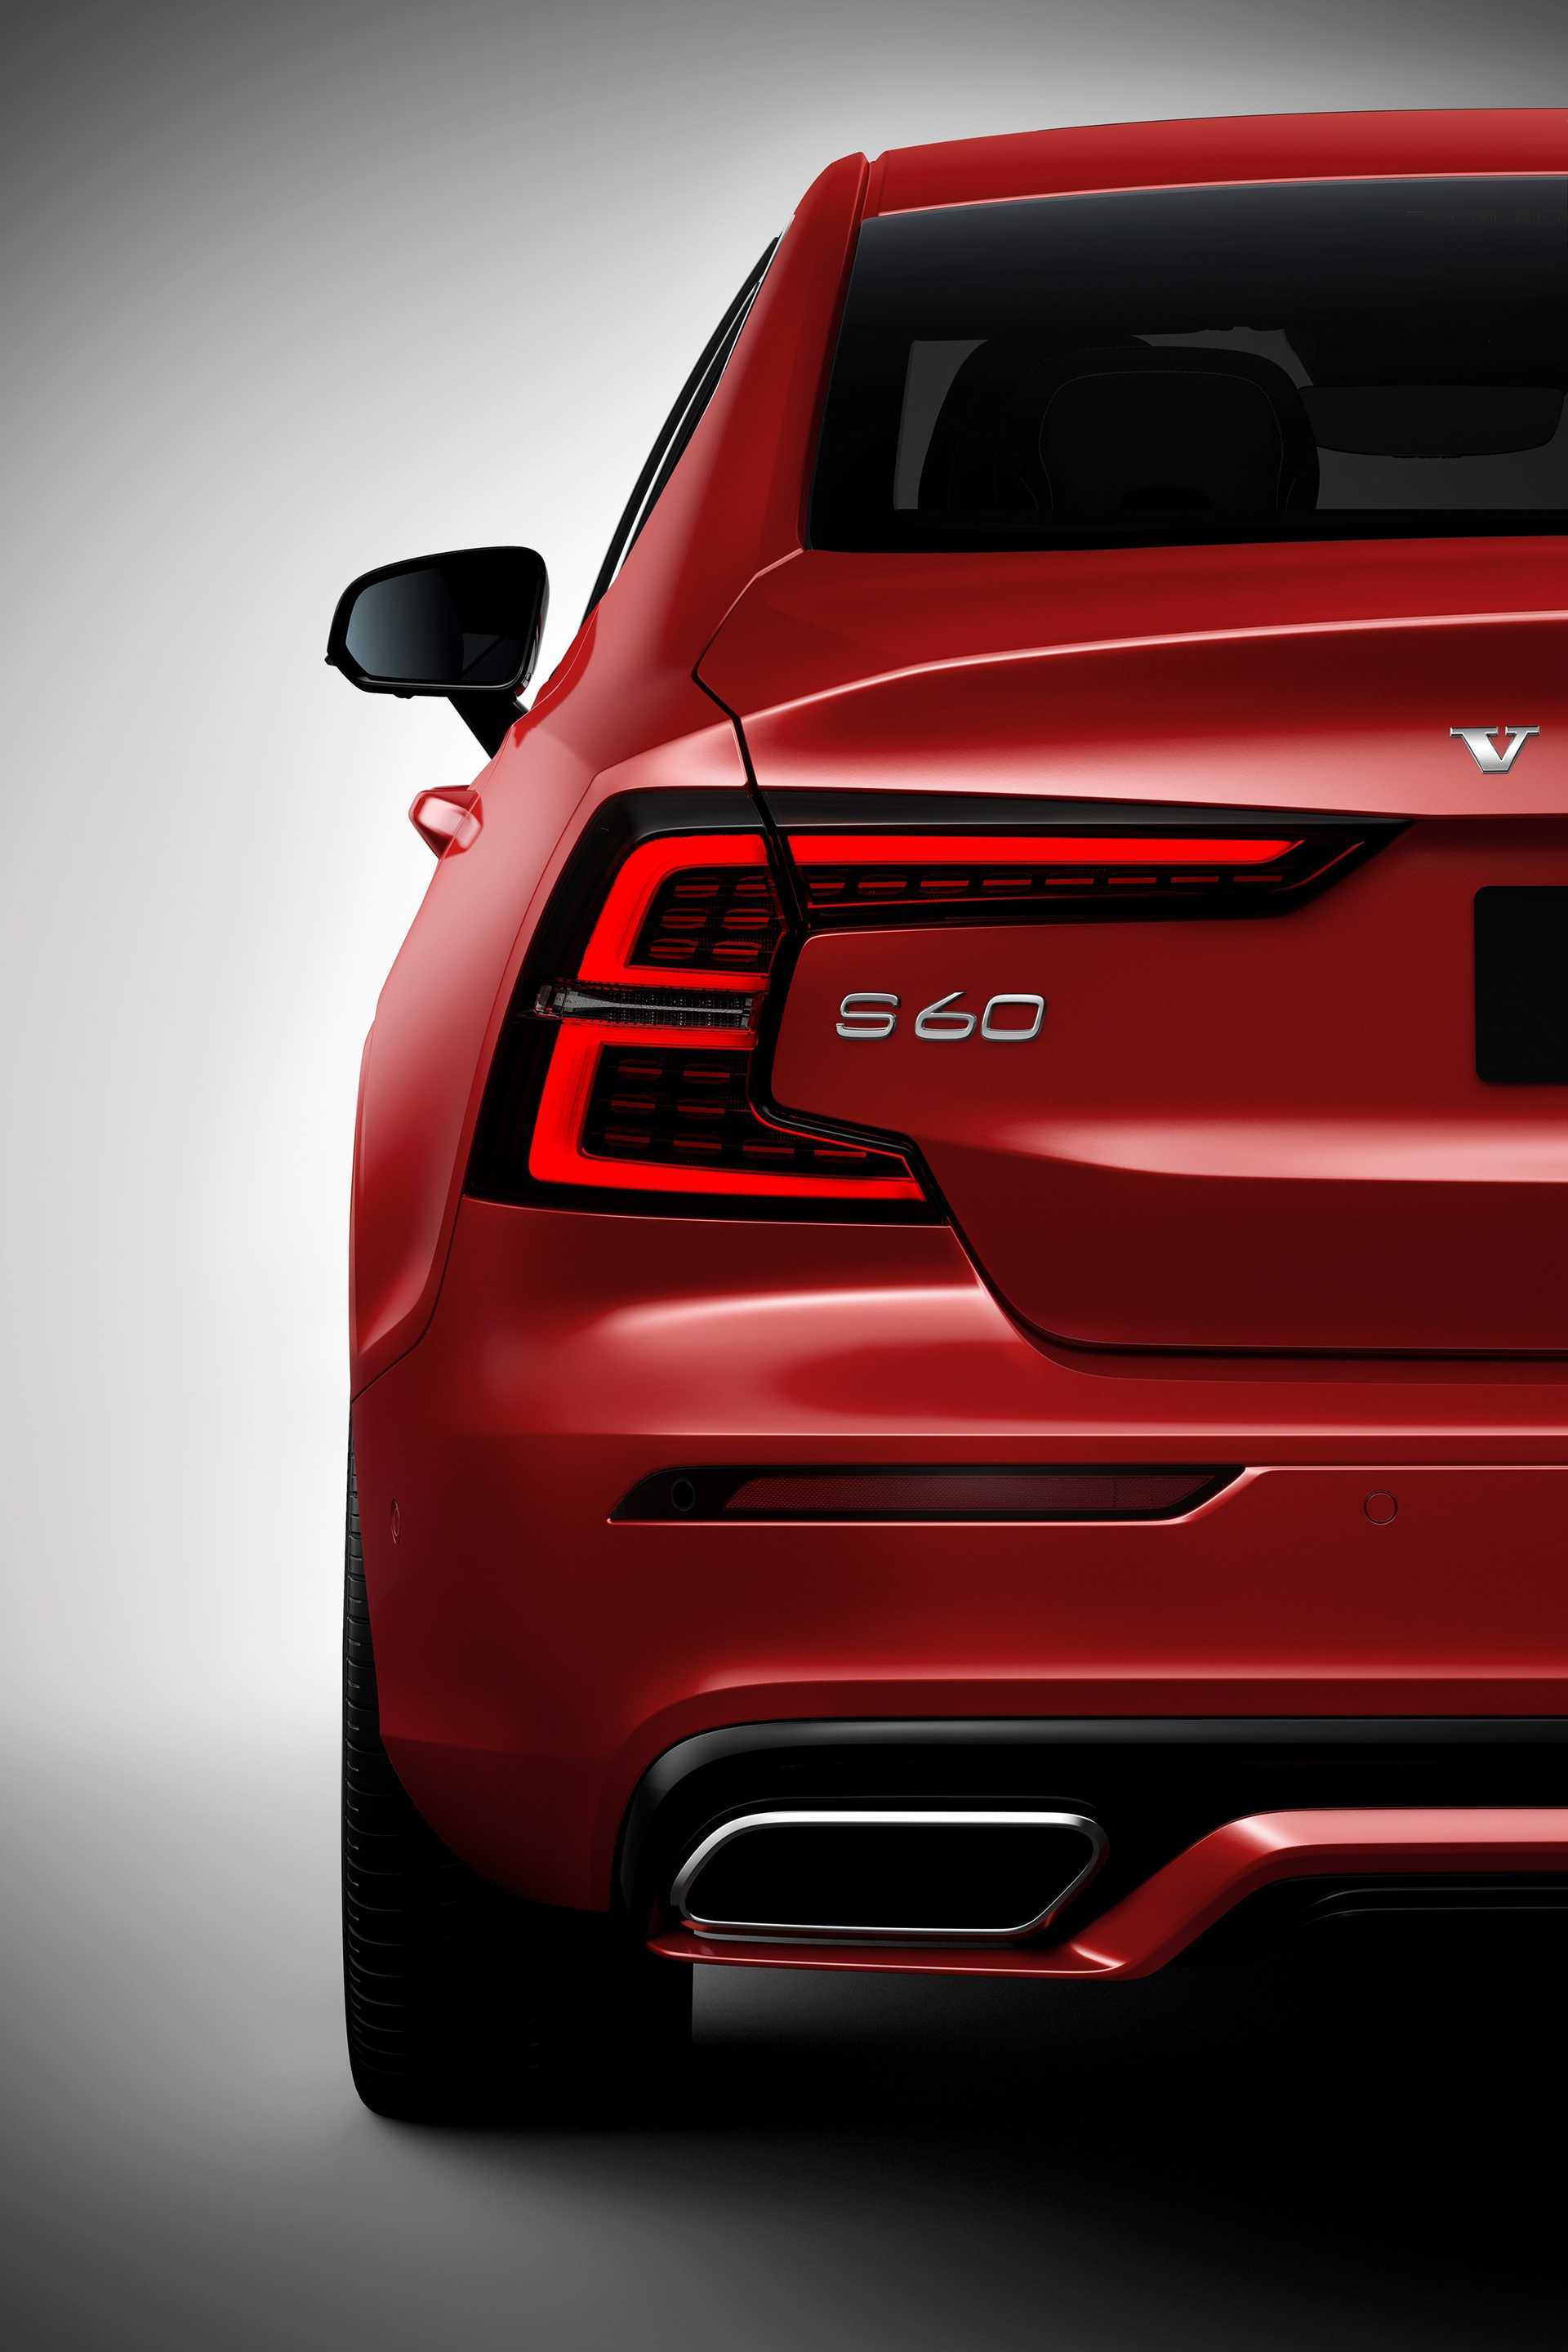 Volvo S60 T6 AWD Geartronic, 340hp, 2019